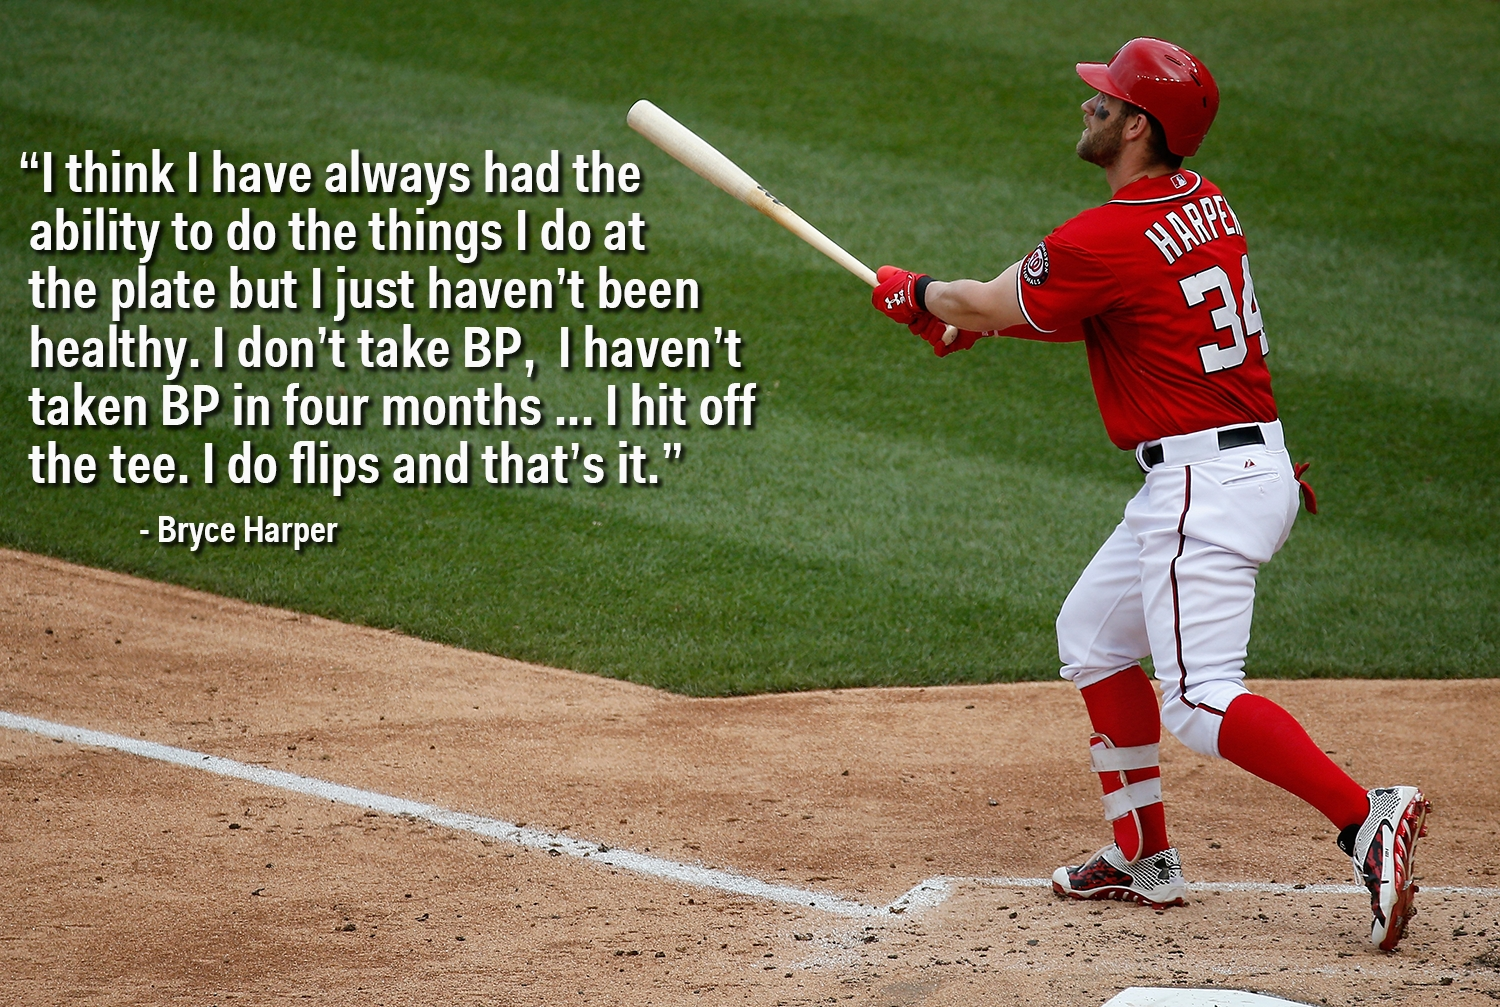 Series Consider Neat Bryce Harper Hasn39t Taken Batting Practice In 4 Months Business - About Quote